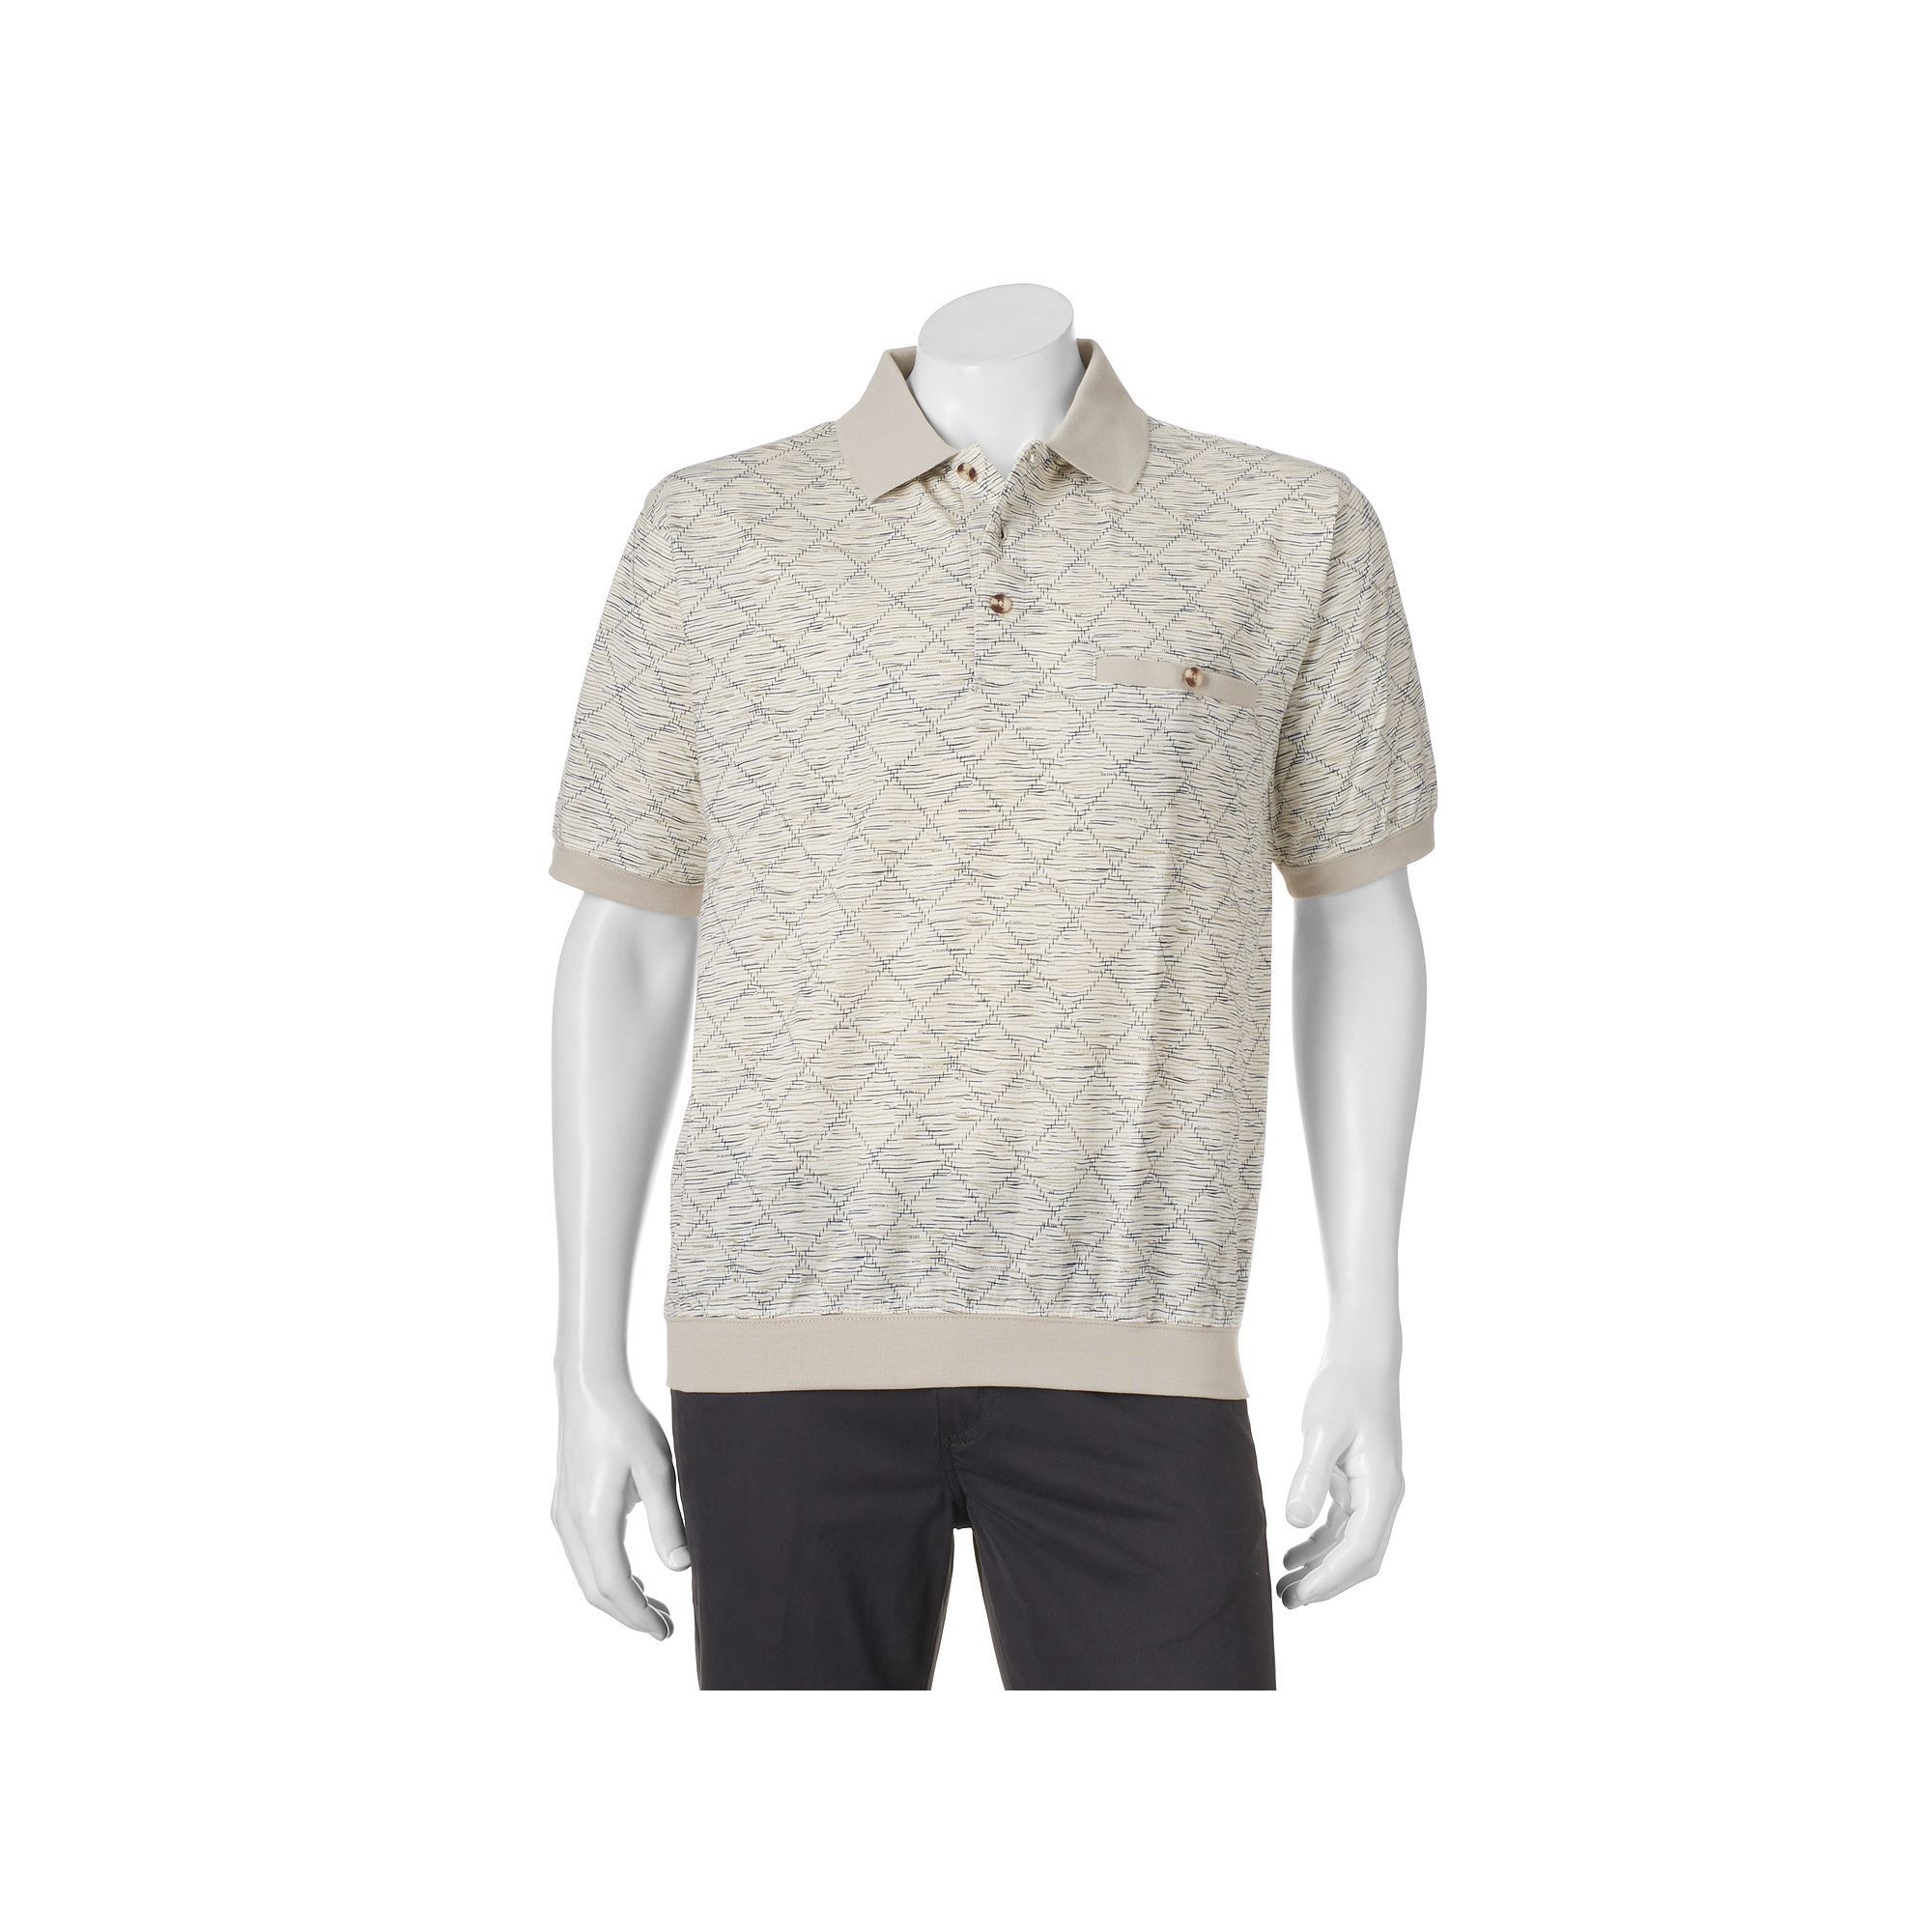 Mens Polo Shirts With Banded Bottom